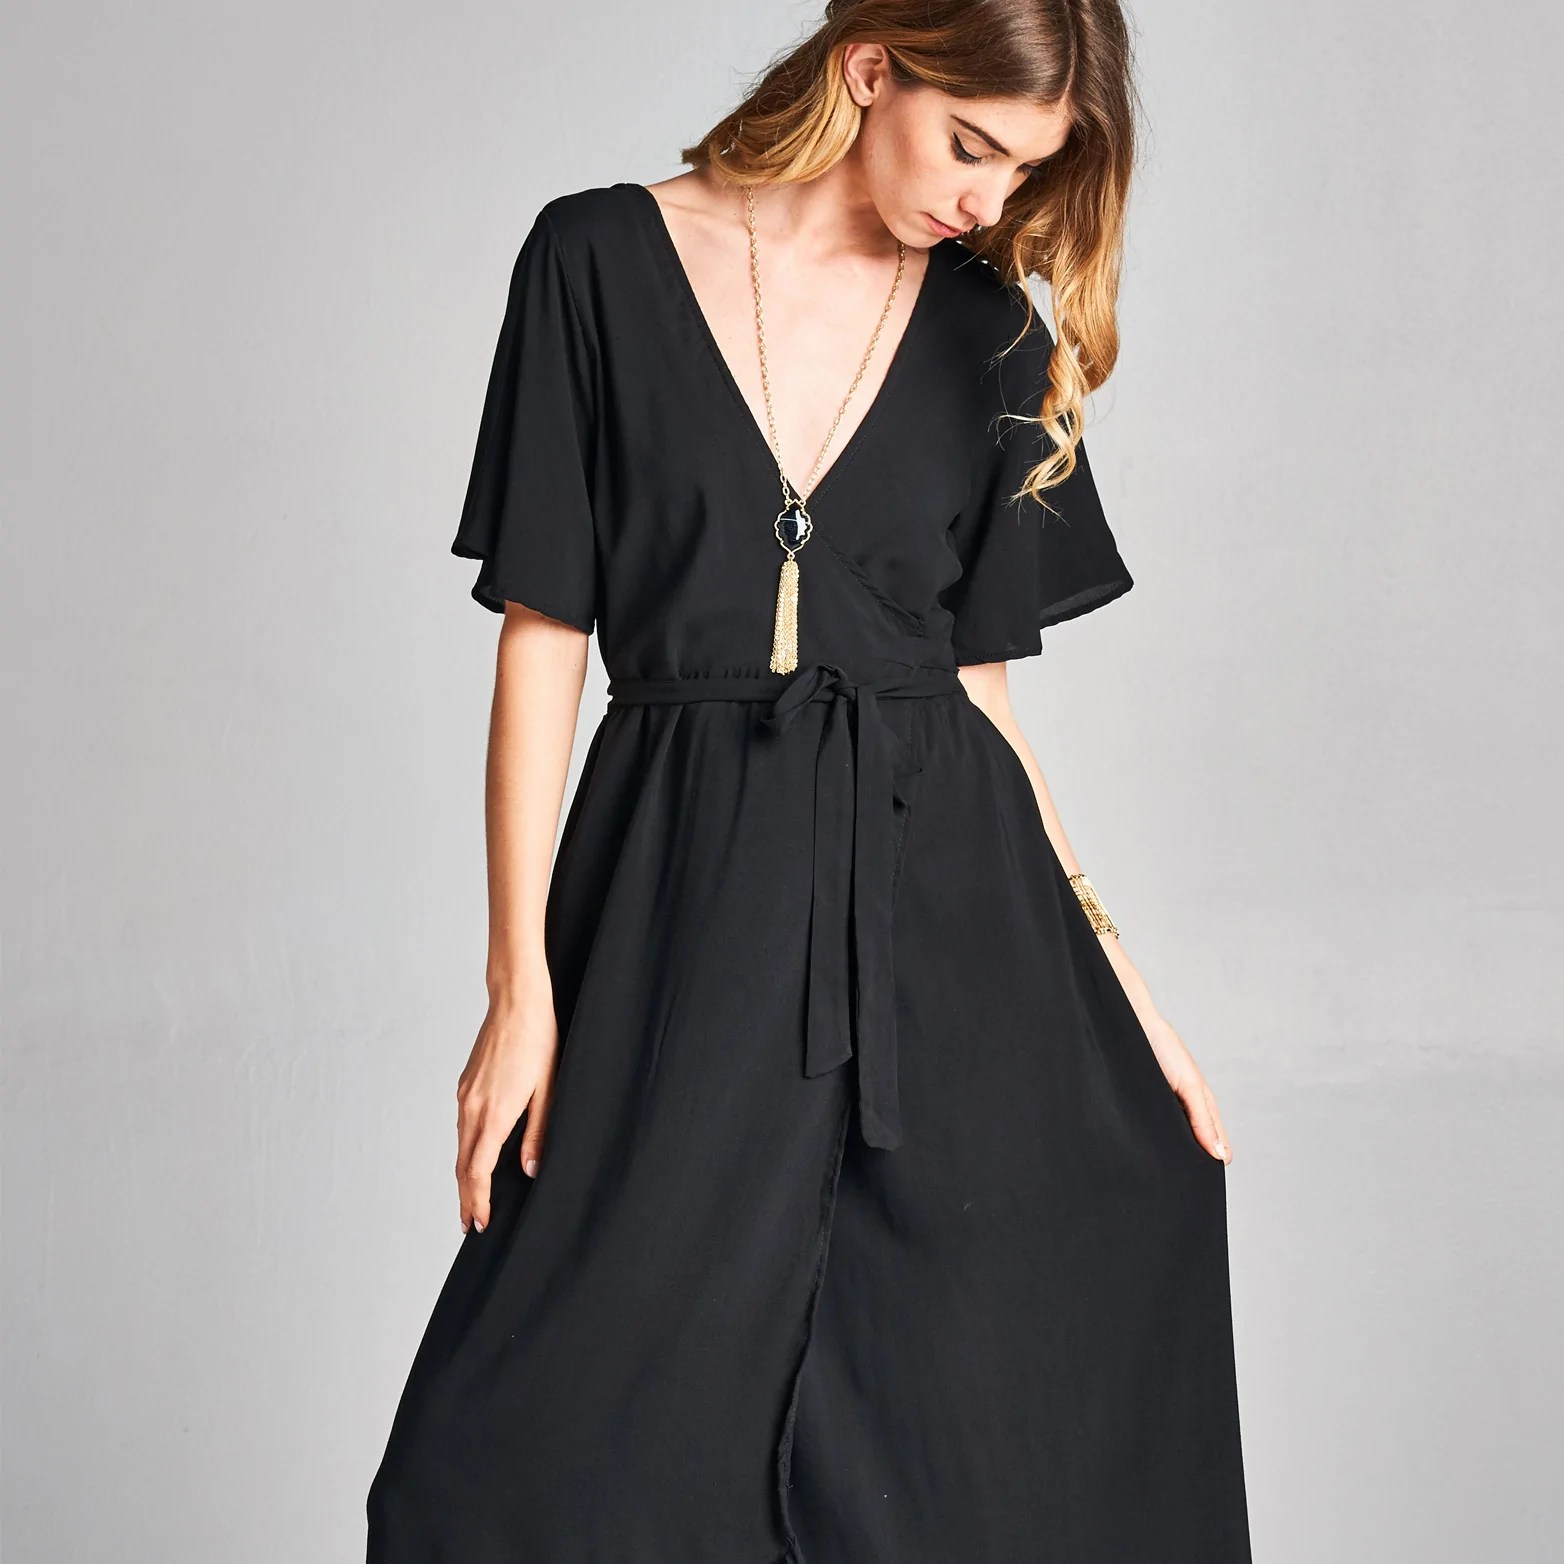 Black Wrap around Dress